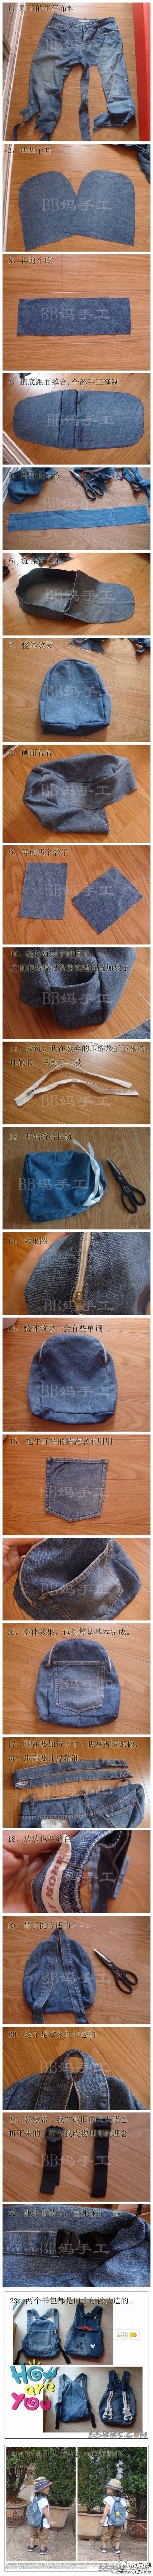 DIY Jean Backpack from an old pair of jeans